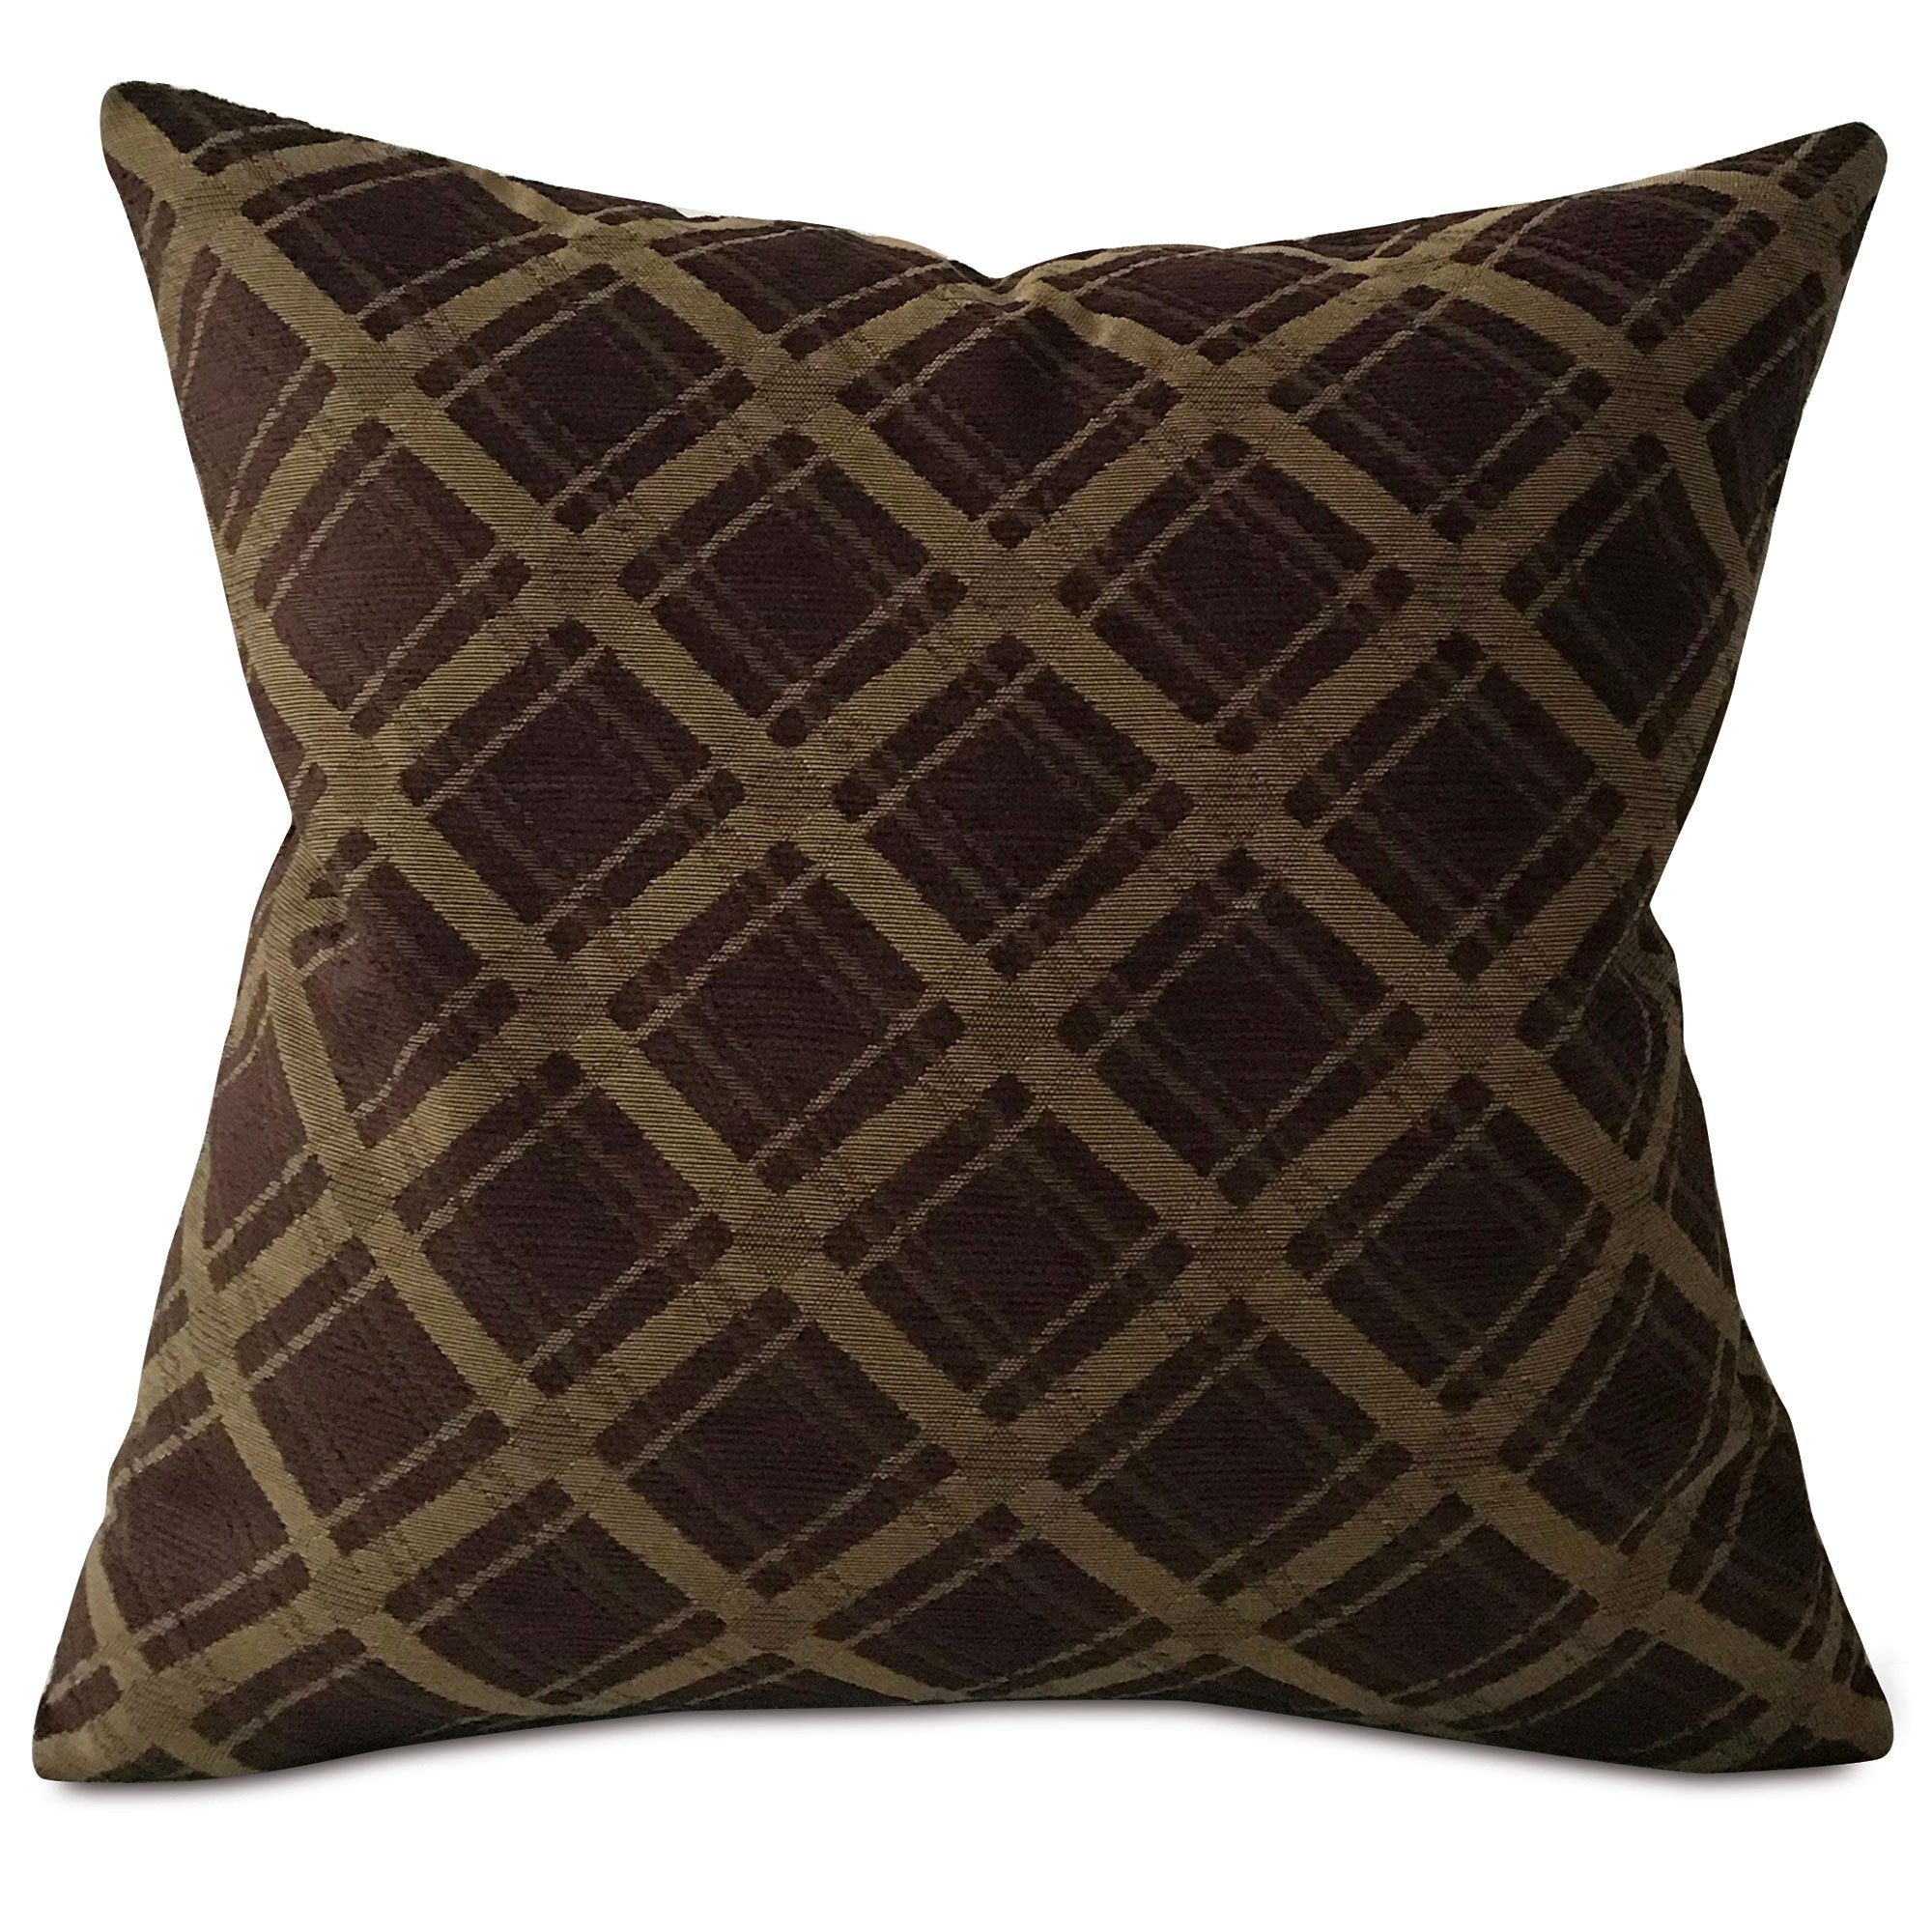 Dark Brown Modern Geometric Throw Pillow Cover 22 X22 Plankroad Home Decor